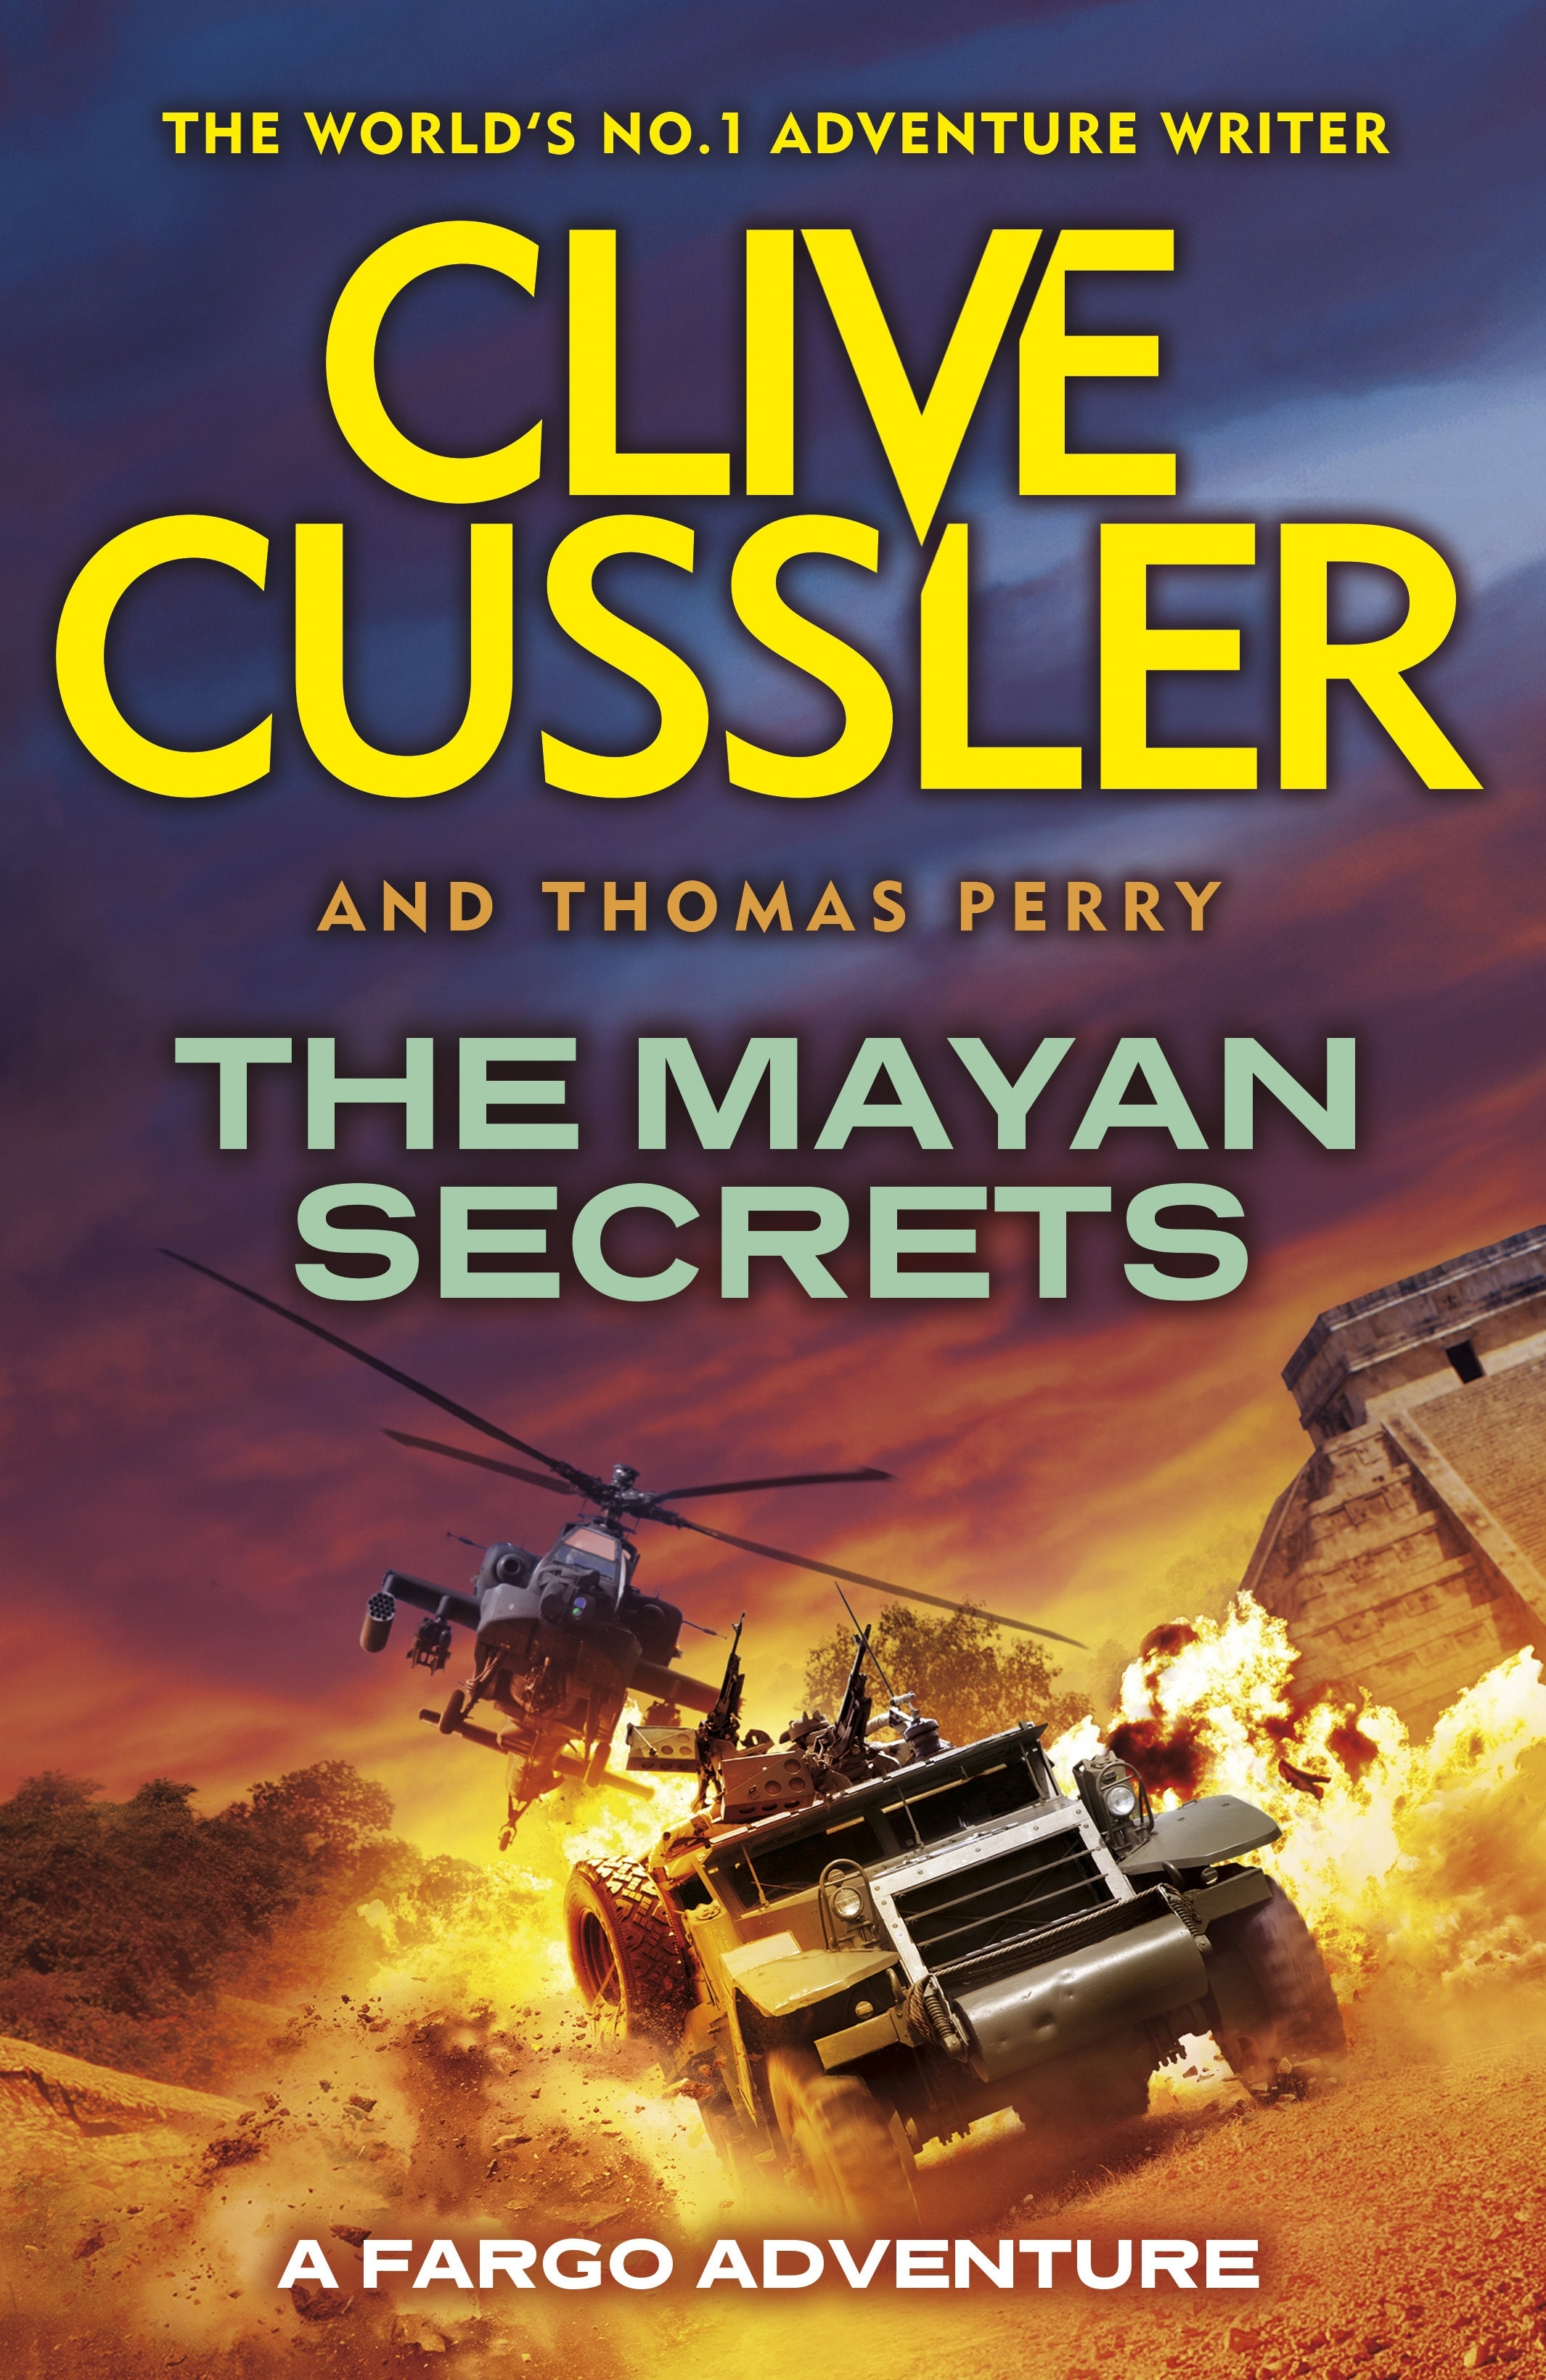 The Mayan Secrets: A Fargo Adventure. By Clive Cussler ...